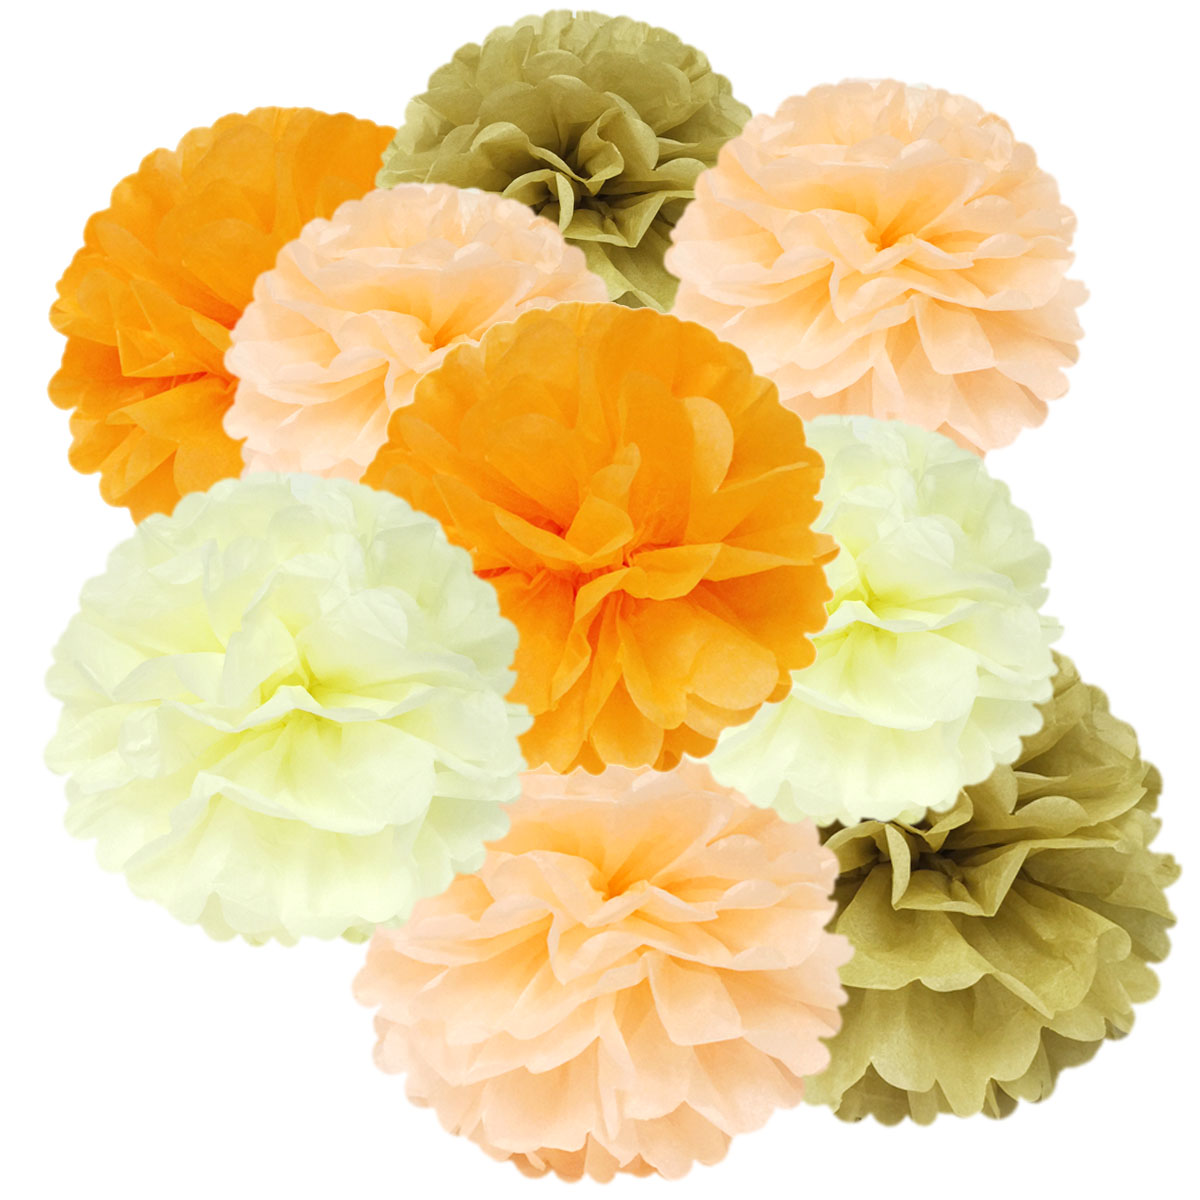 Wrapables® Set of 12 Tissue Pom Pom Party Decorations for Weddings, Birthday Parties Baby Showers and Nursery Decor, Peach/Orange/Tan/Ivory